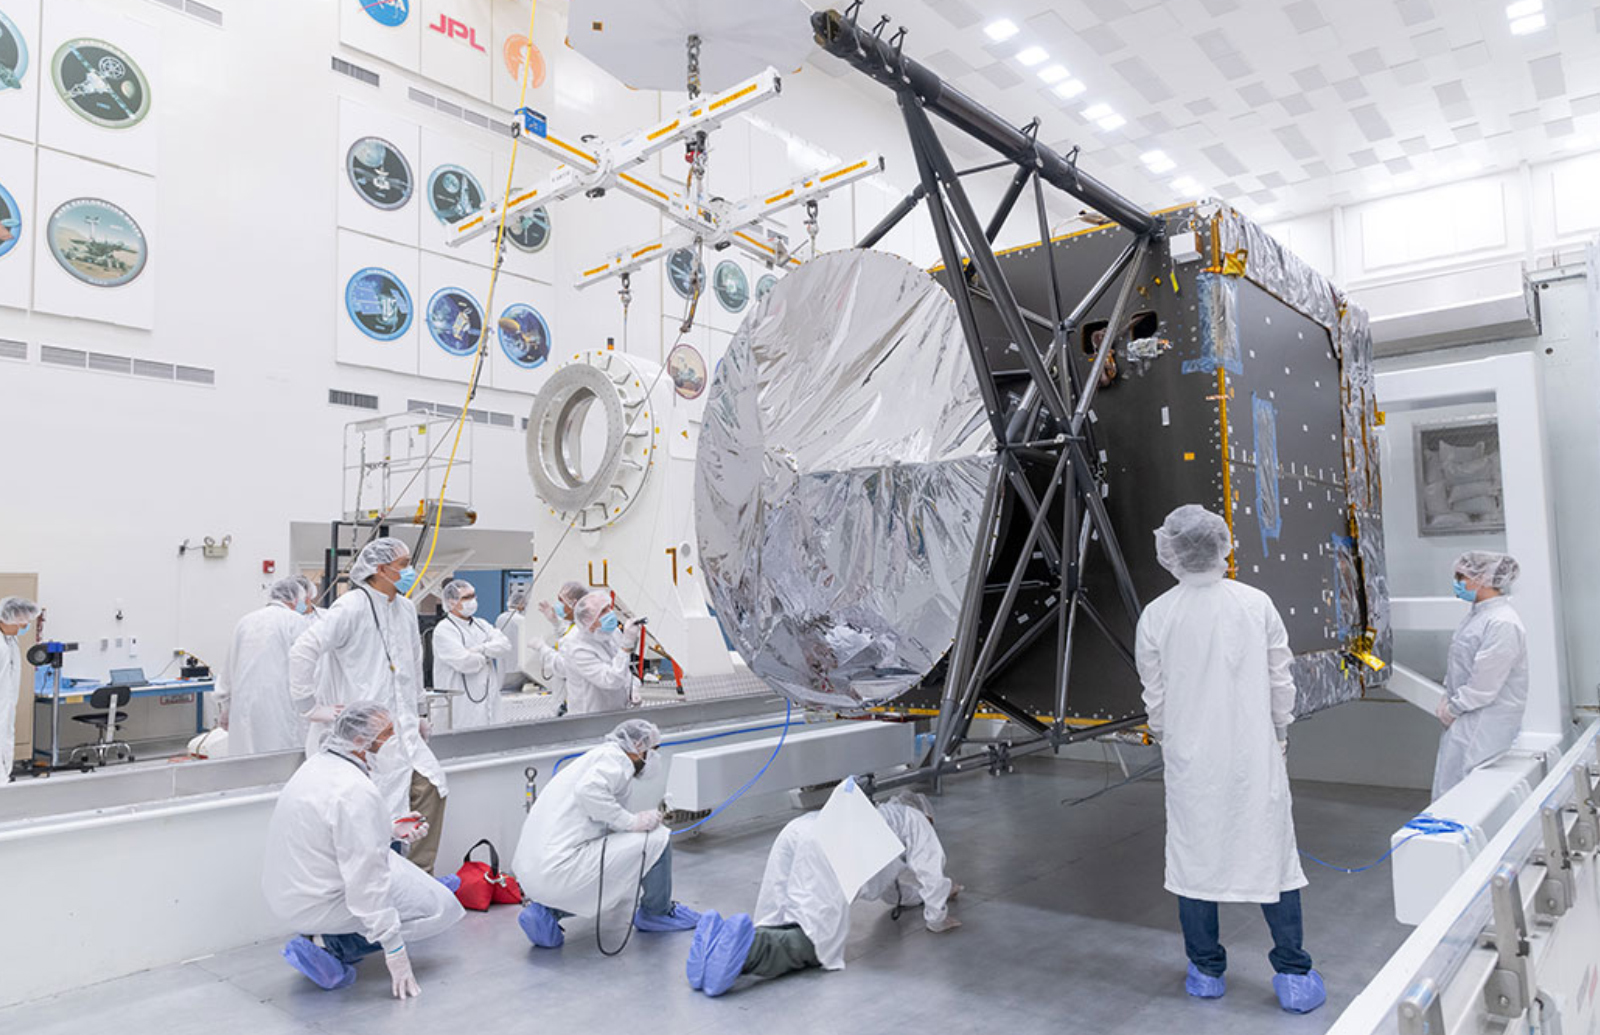 NASA's asteroid-hunting spacecraft is finally taking shape